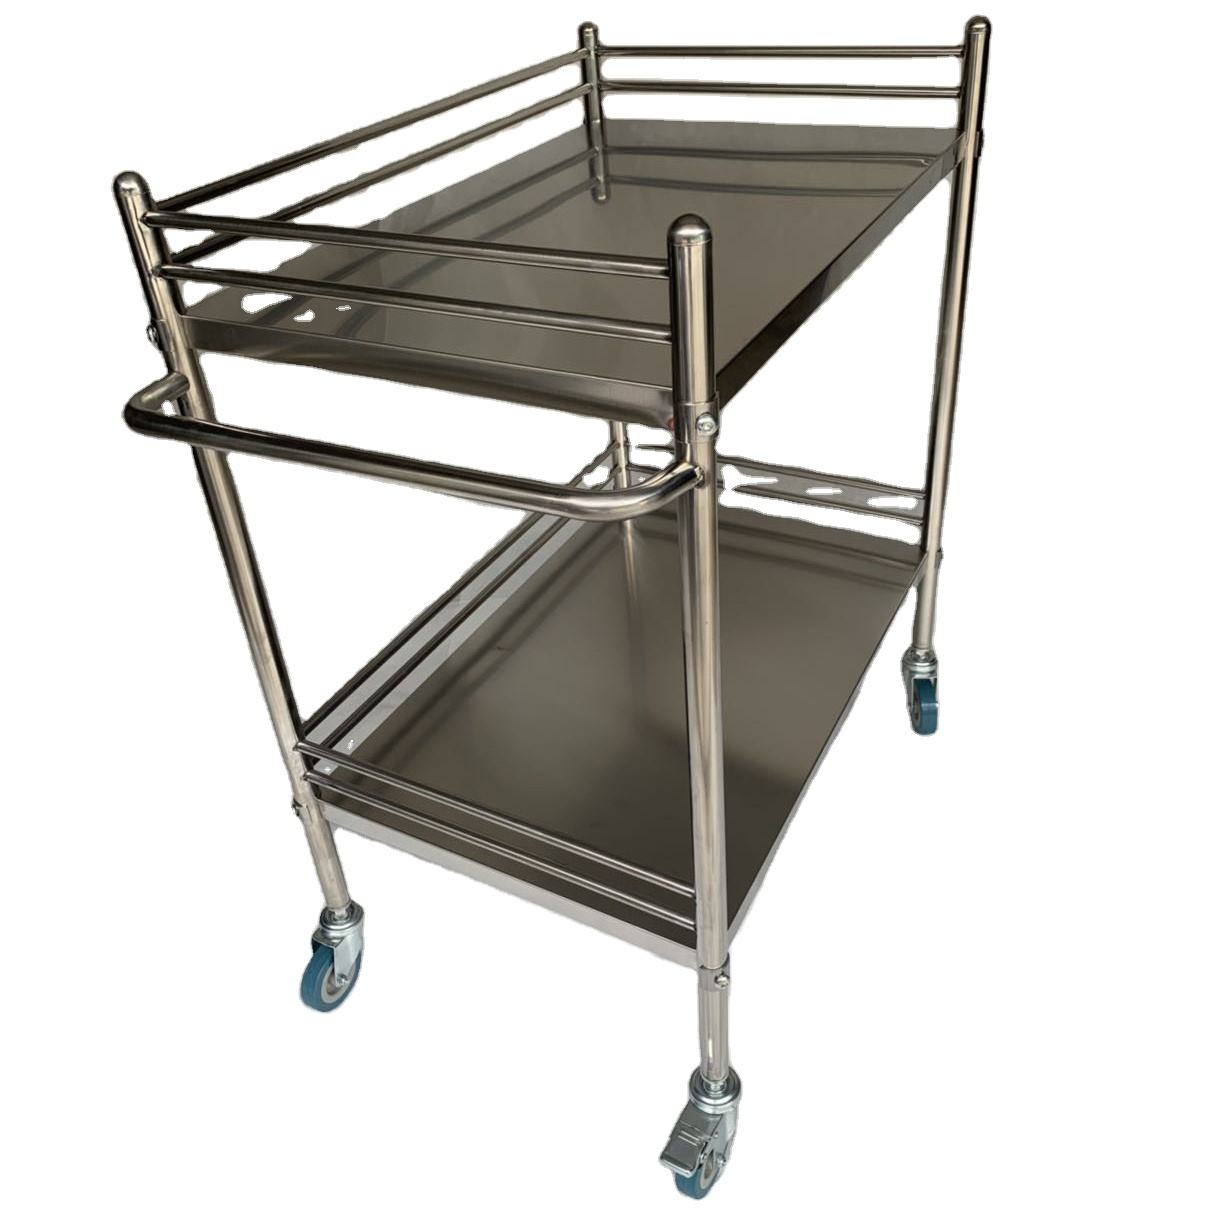 Good Quality 2-tier stainless steel instrument trolley clinic surgical trolley for hospital use